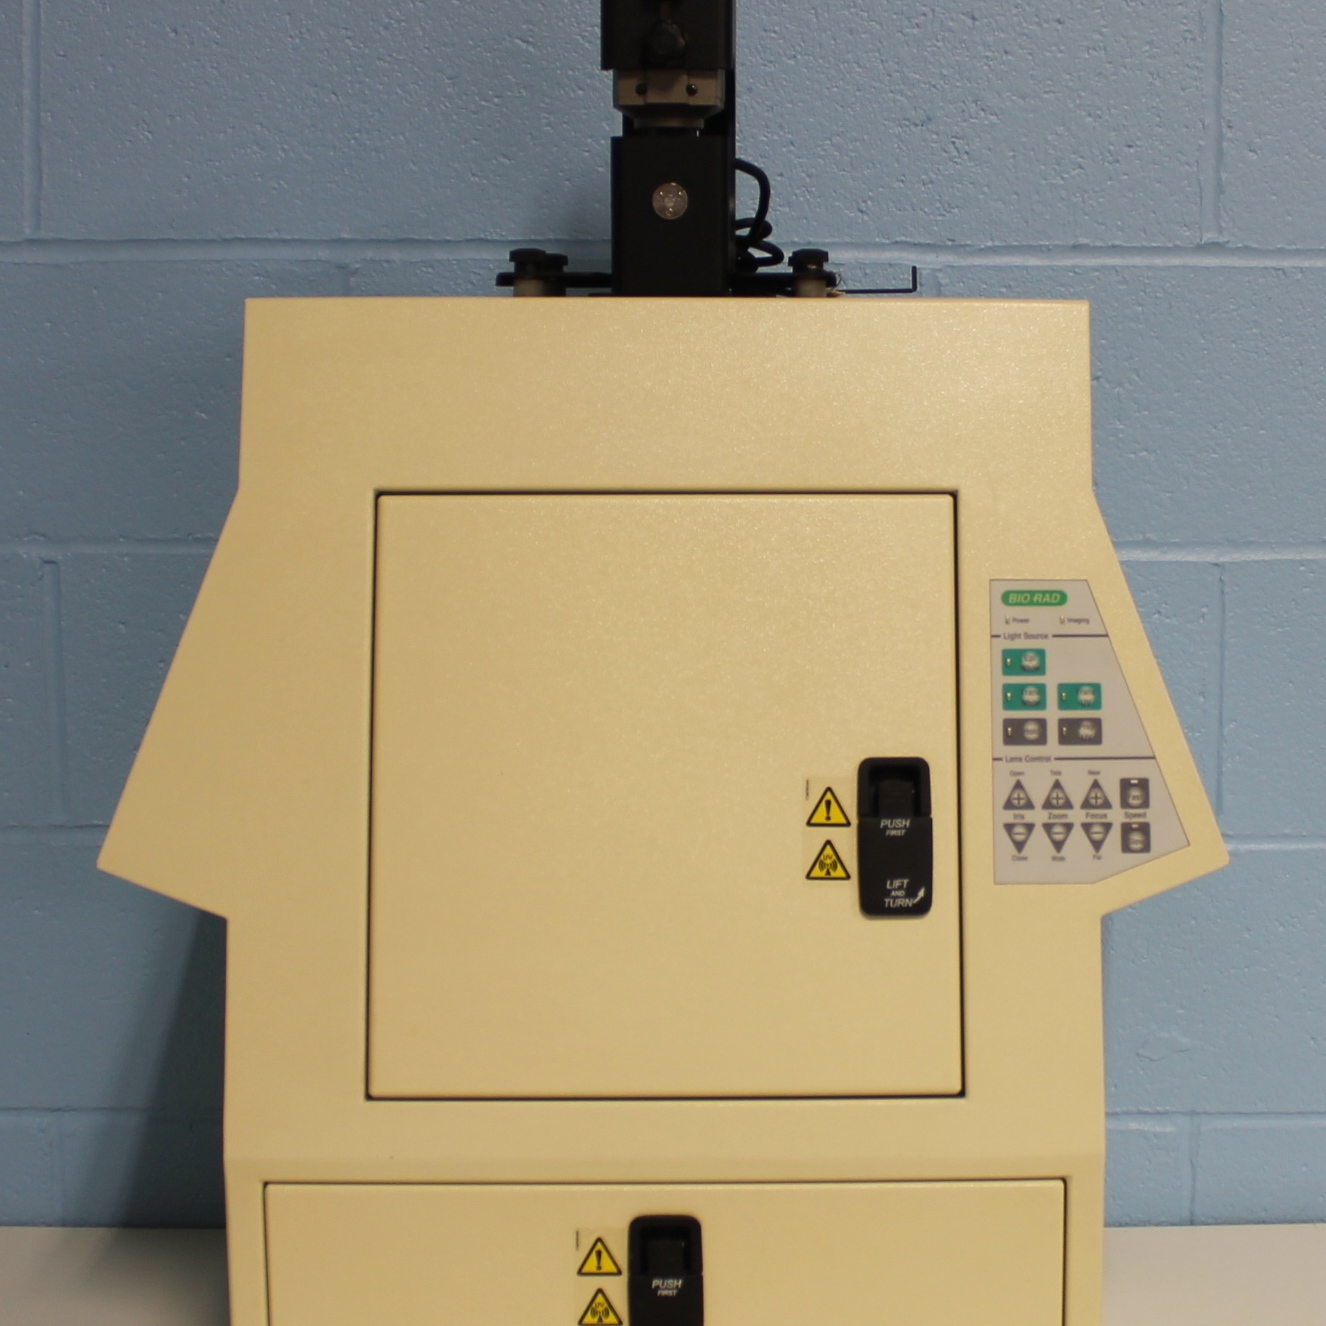 Refurbished bio rad gel doc 2000 imaging system for Gel documentation system bio rad price